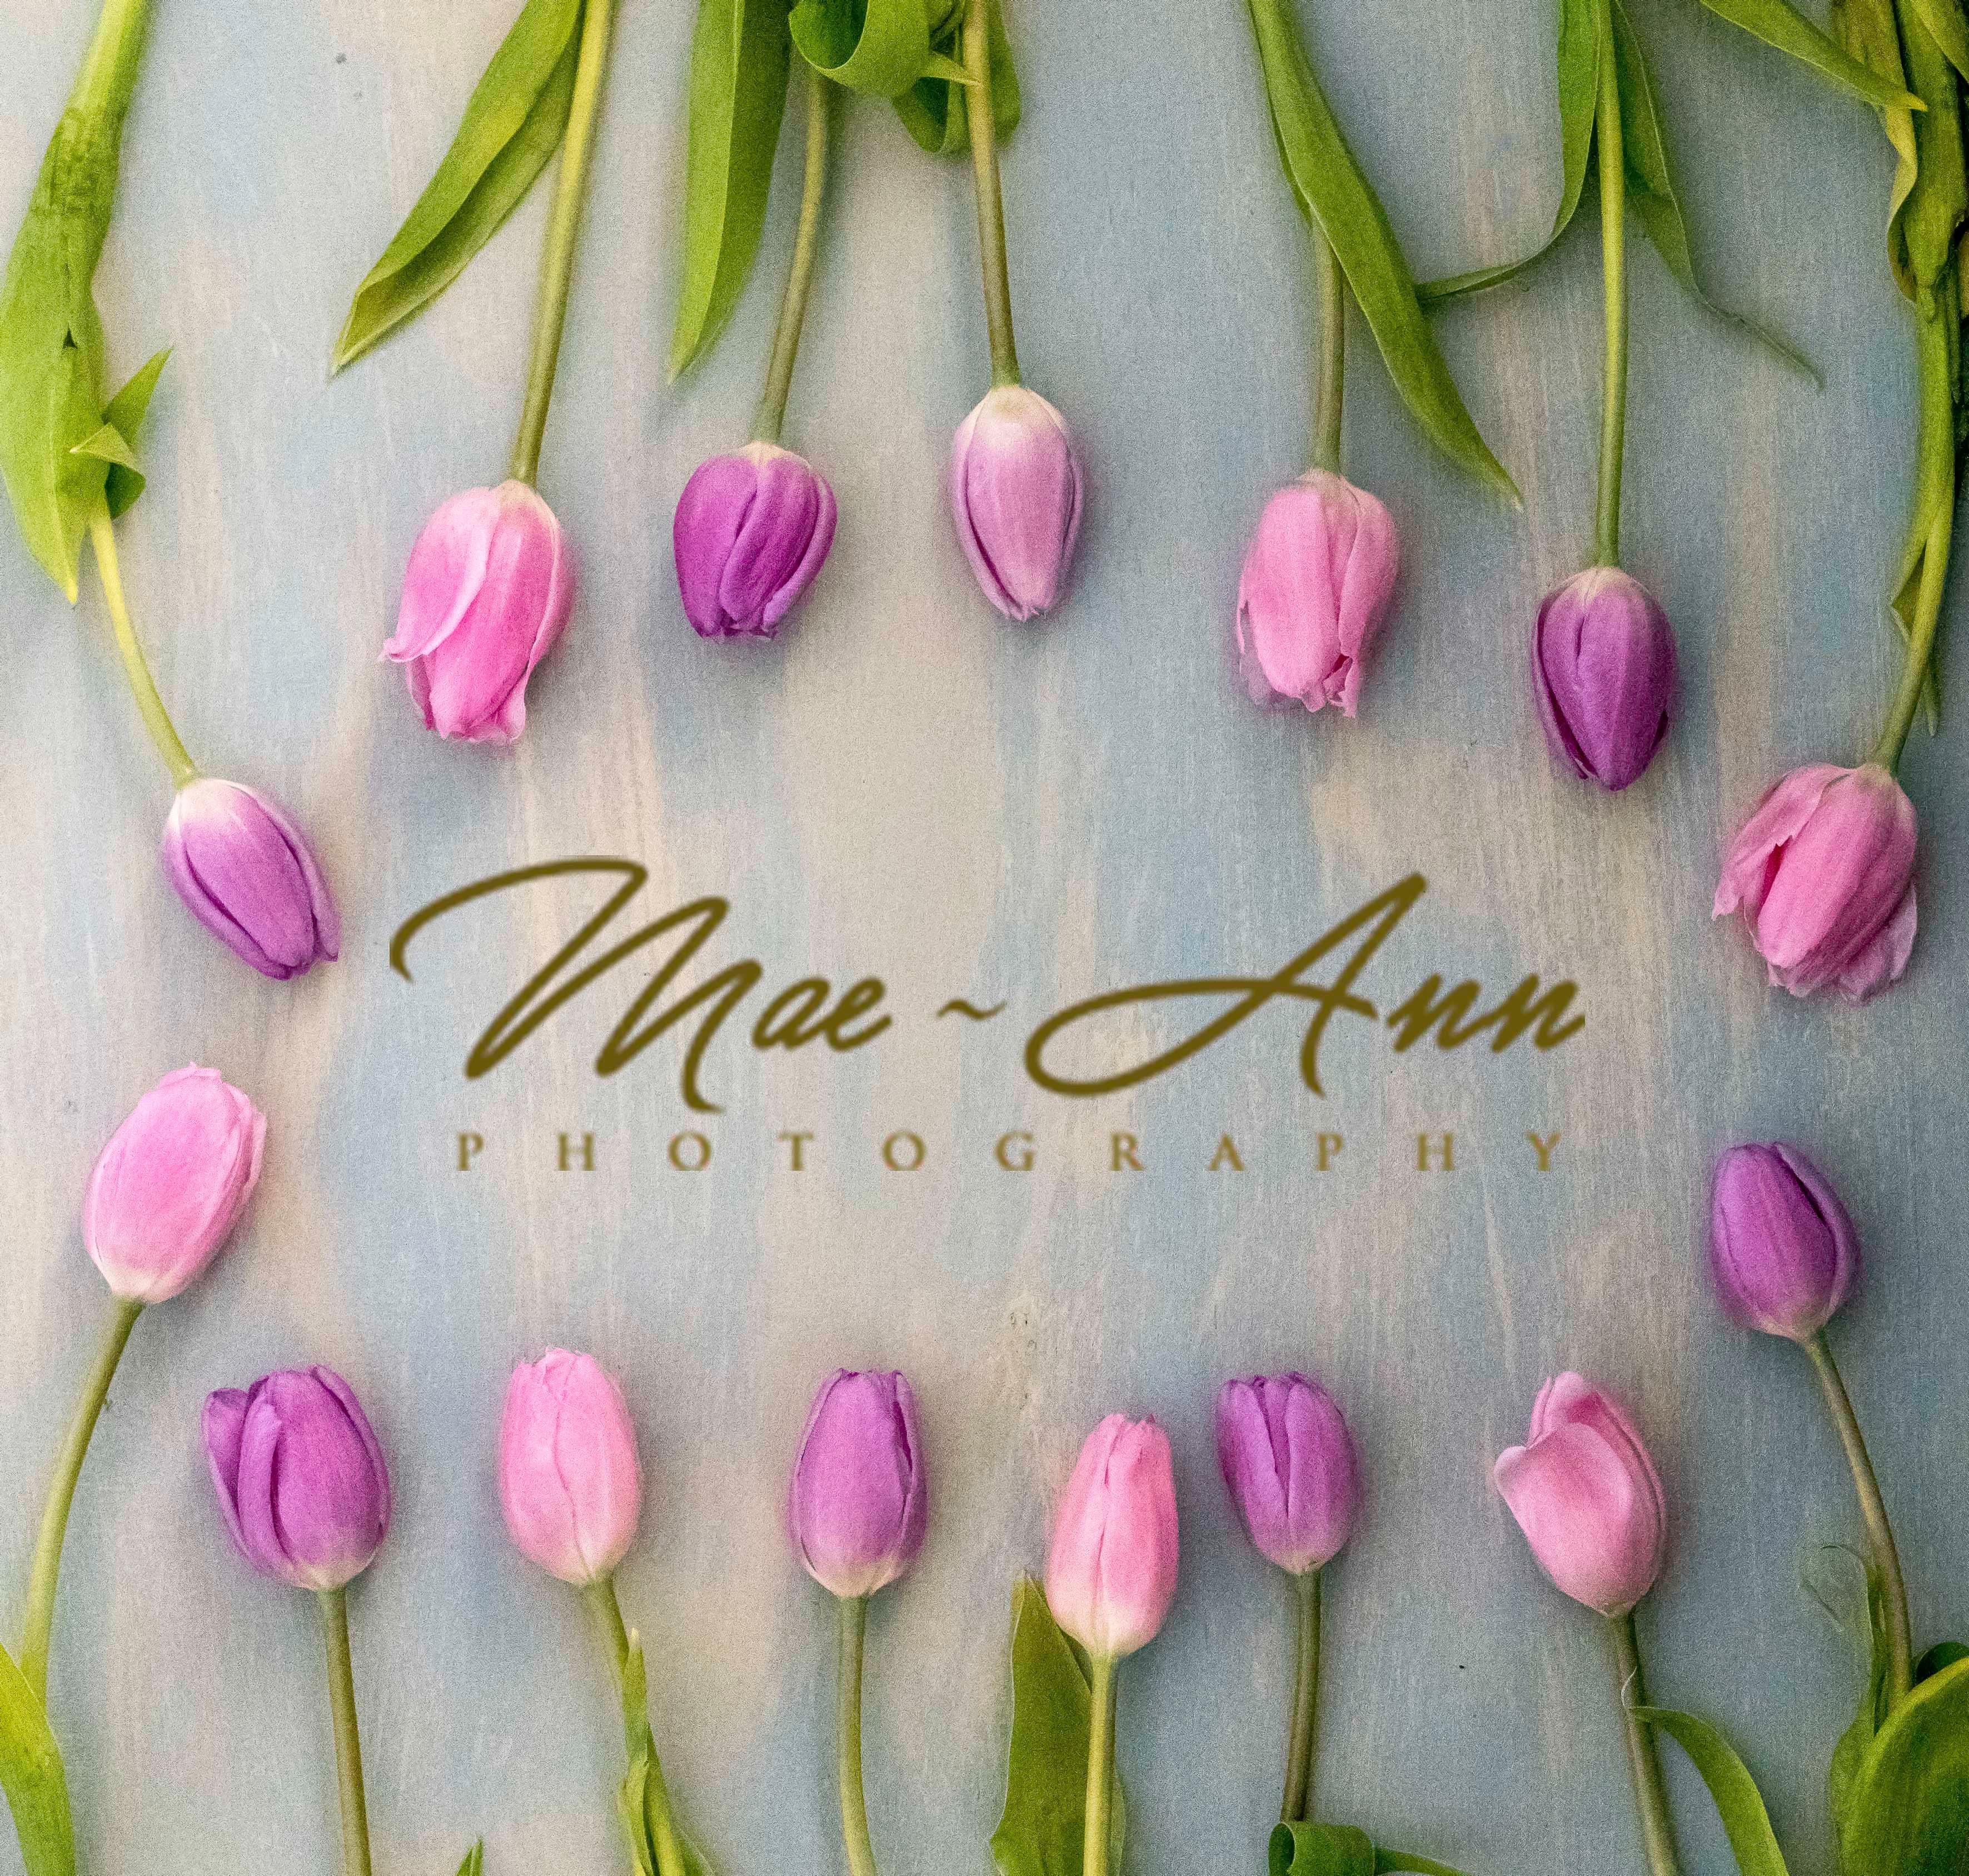 MaeAnn Photography LLC image 0